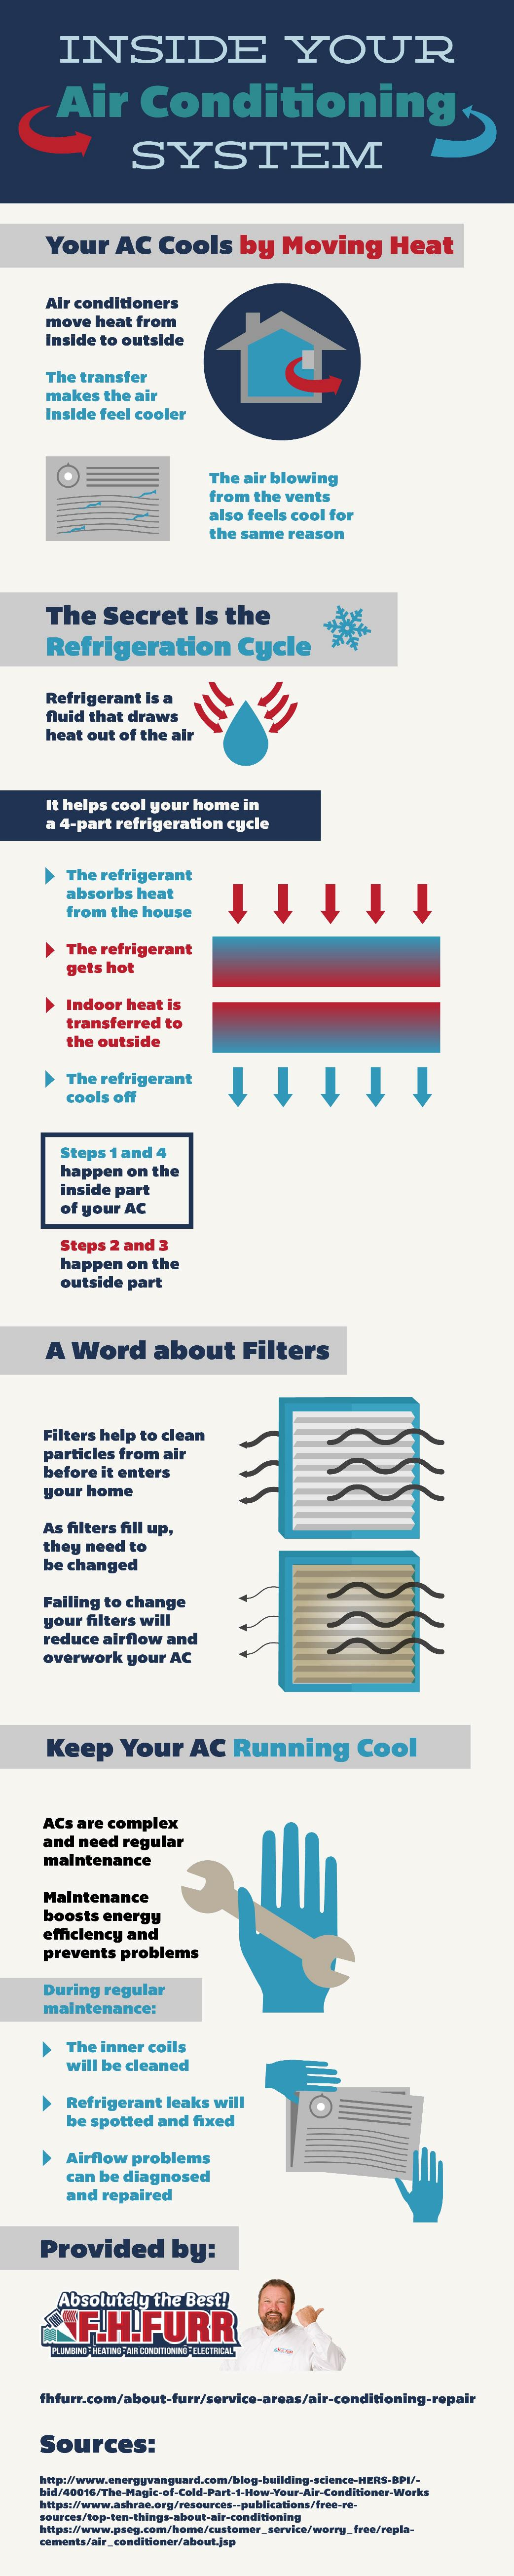 Inside Your Air Conditioning System [INFOGRAPHIC